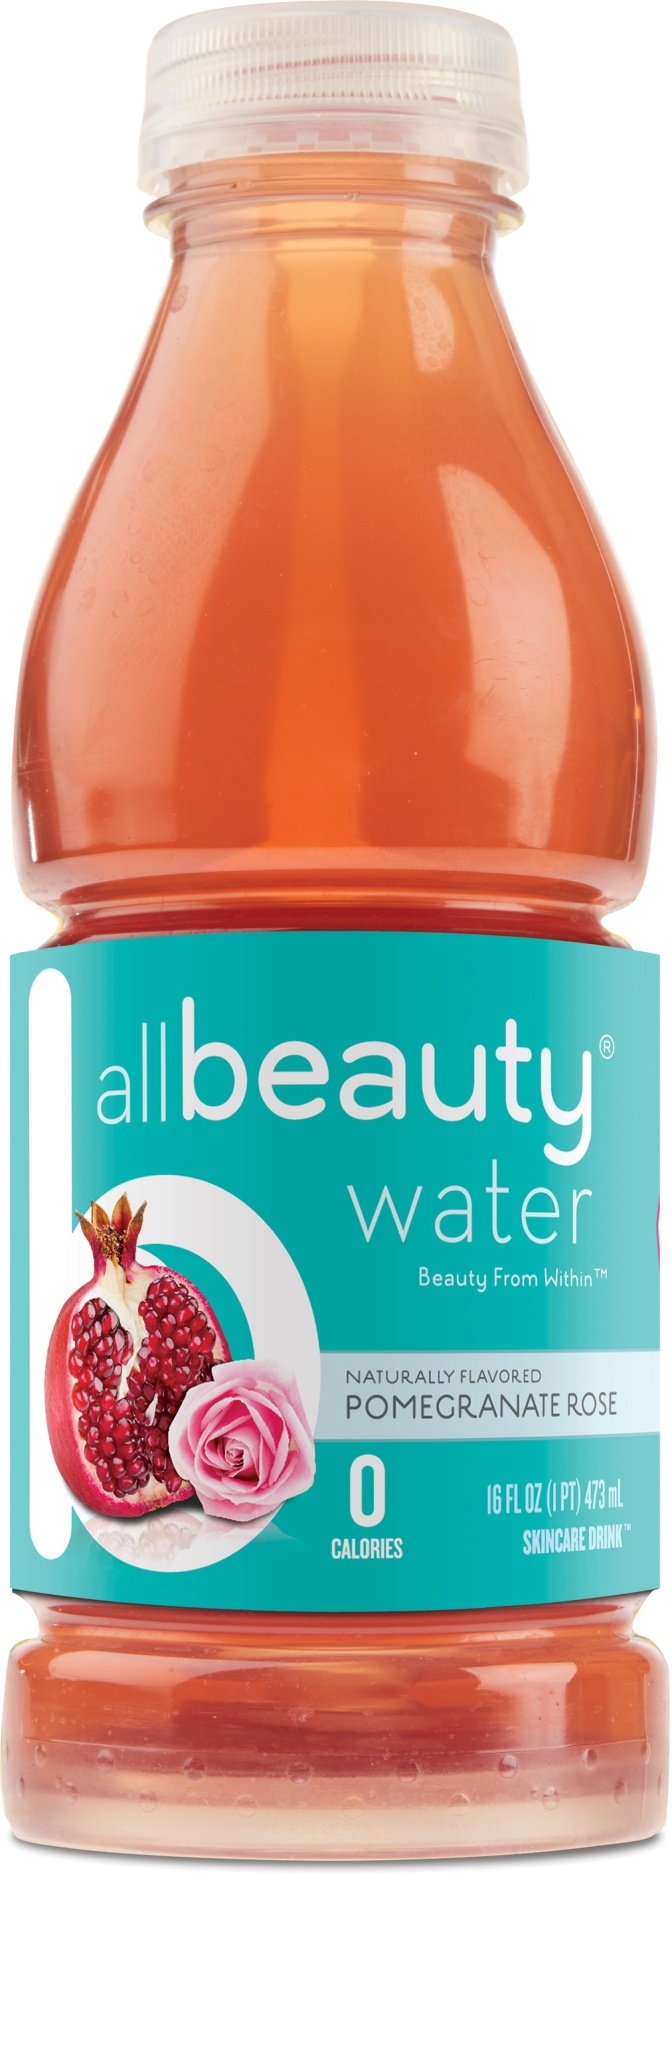 All Beauty® Water- a skincare drink® formulated to help nourish & hydrate your skin